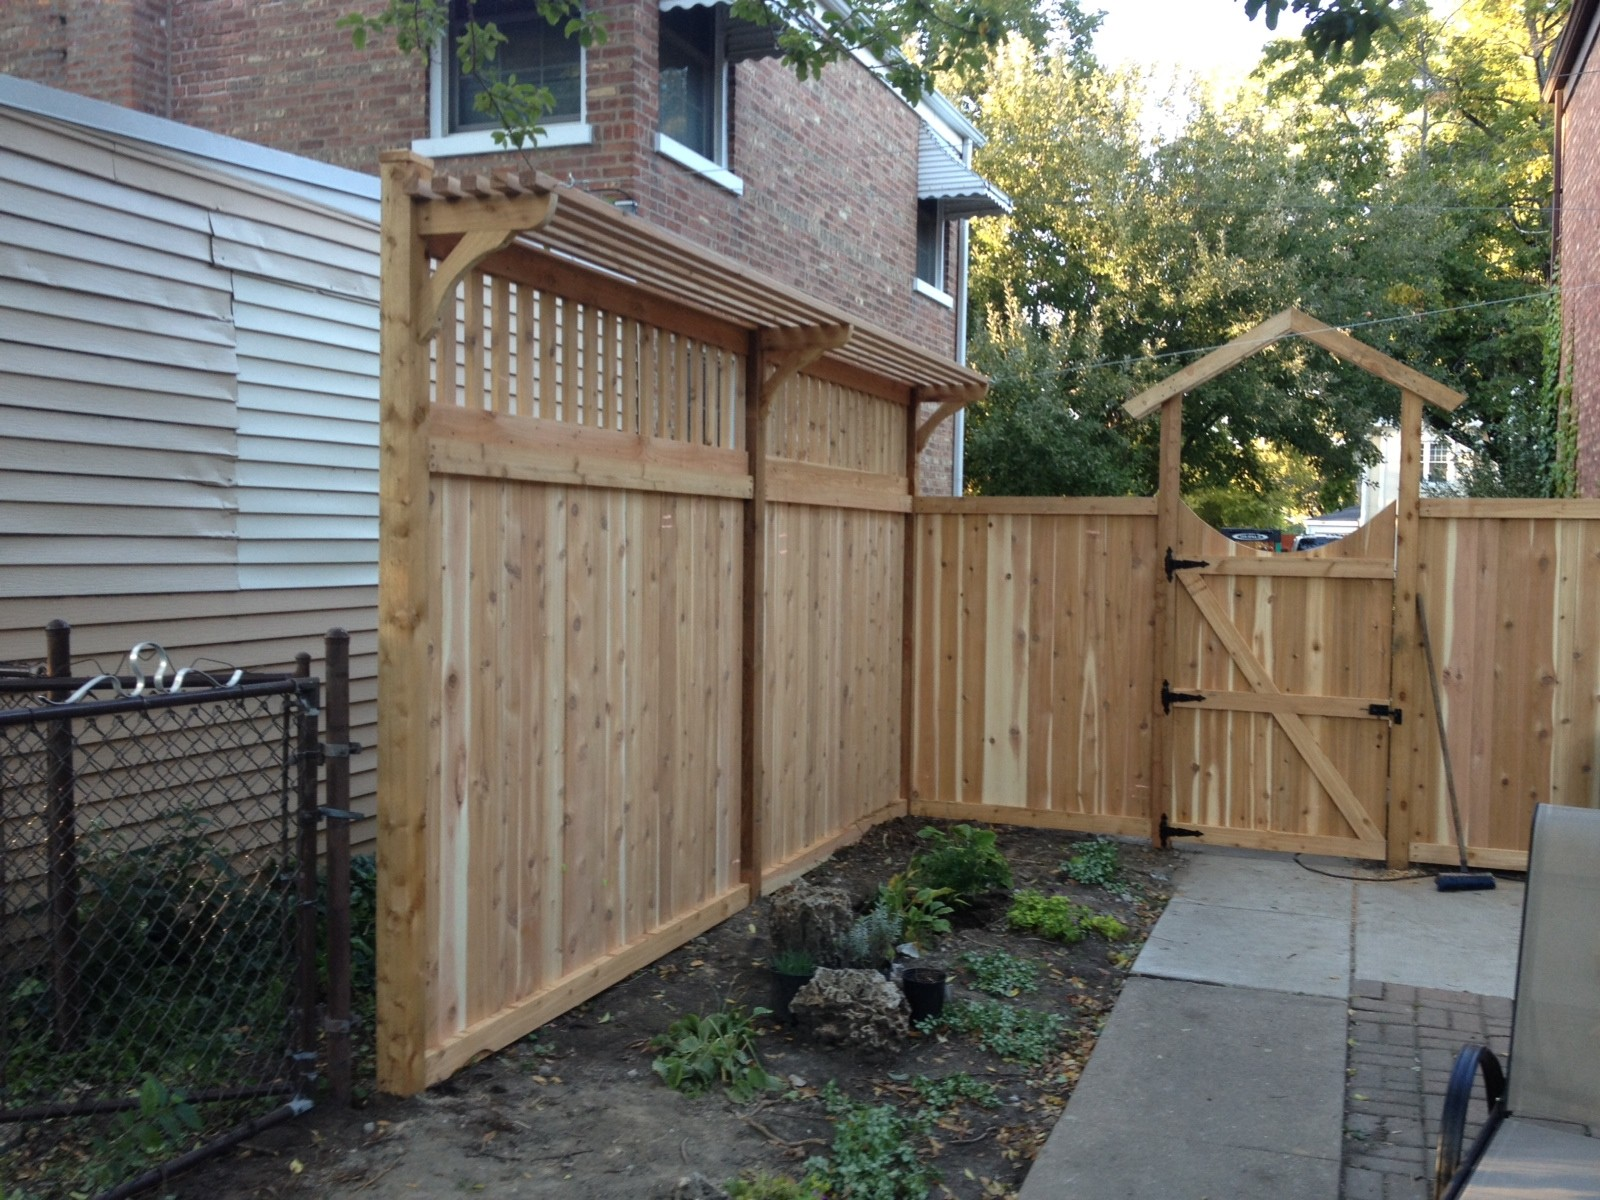 Fencing Company - Fence Insallation & Repairs - Family Fences Glenview IL